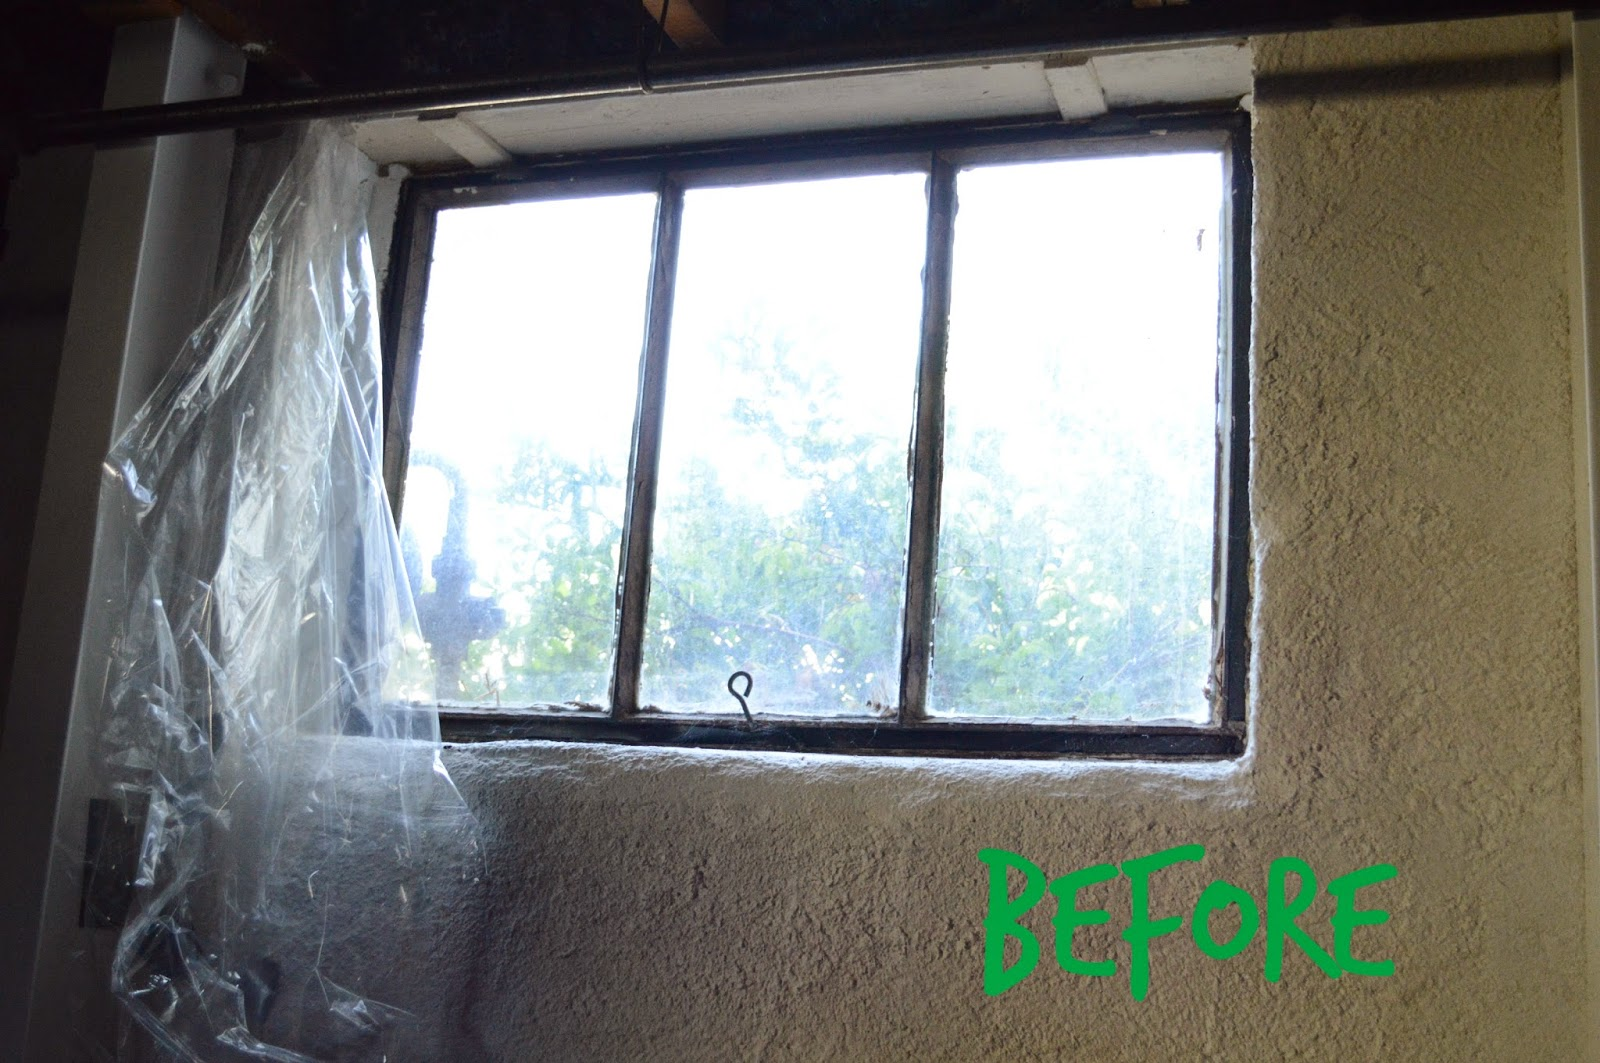 I M Not Sure What Type Of Window That Is Besides Old They Were Drafty Don T Open Unless You Ve Got Biceps Steel And Slowly Ling